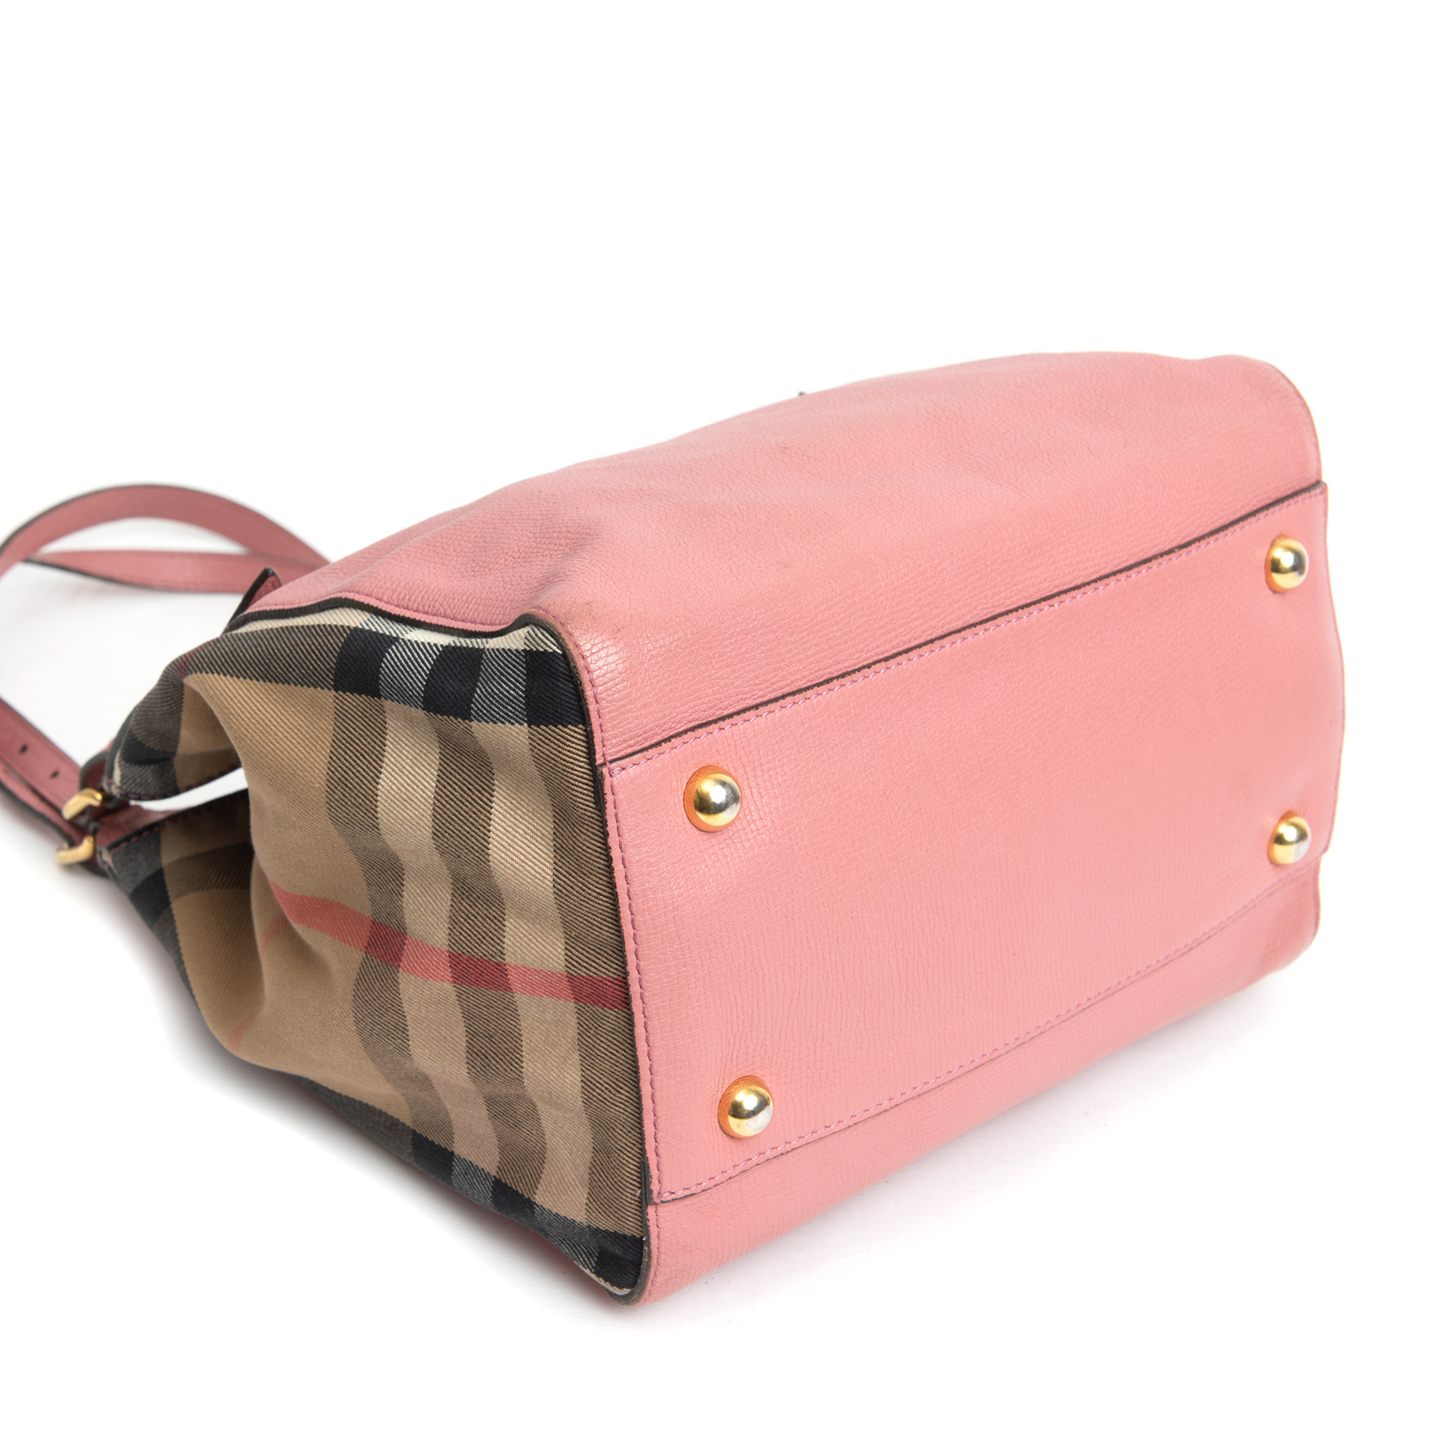 baacbf6f27b ... Burberry Pale Orchid Leather and House Check Small Canter Bag 04 ...